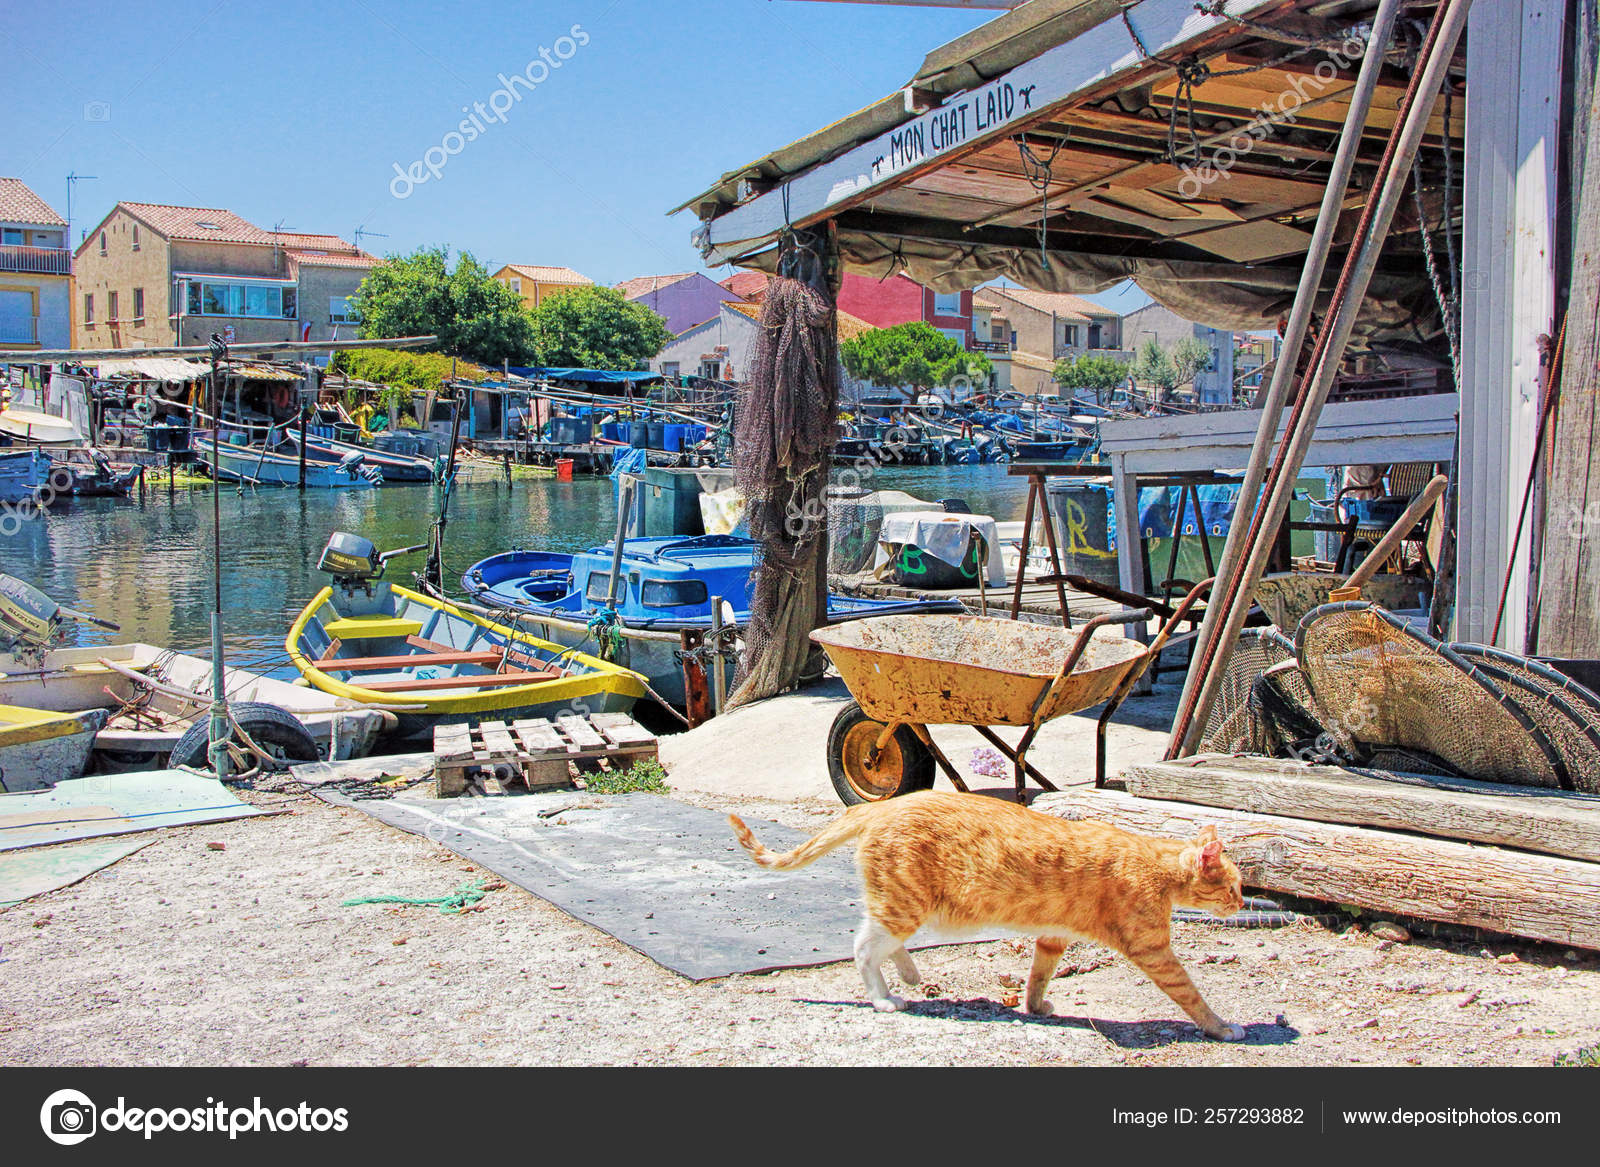 Fishermen's district of Sete, France – Stock Editorial Photo